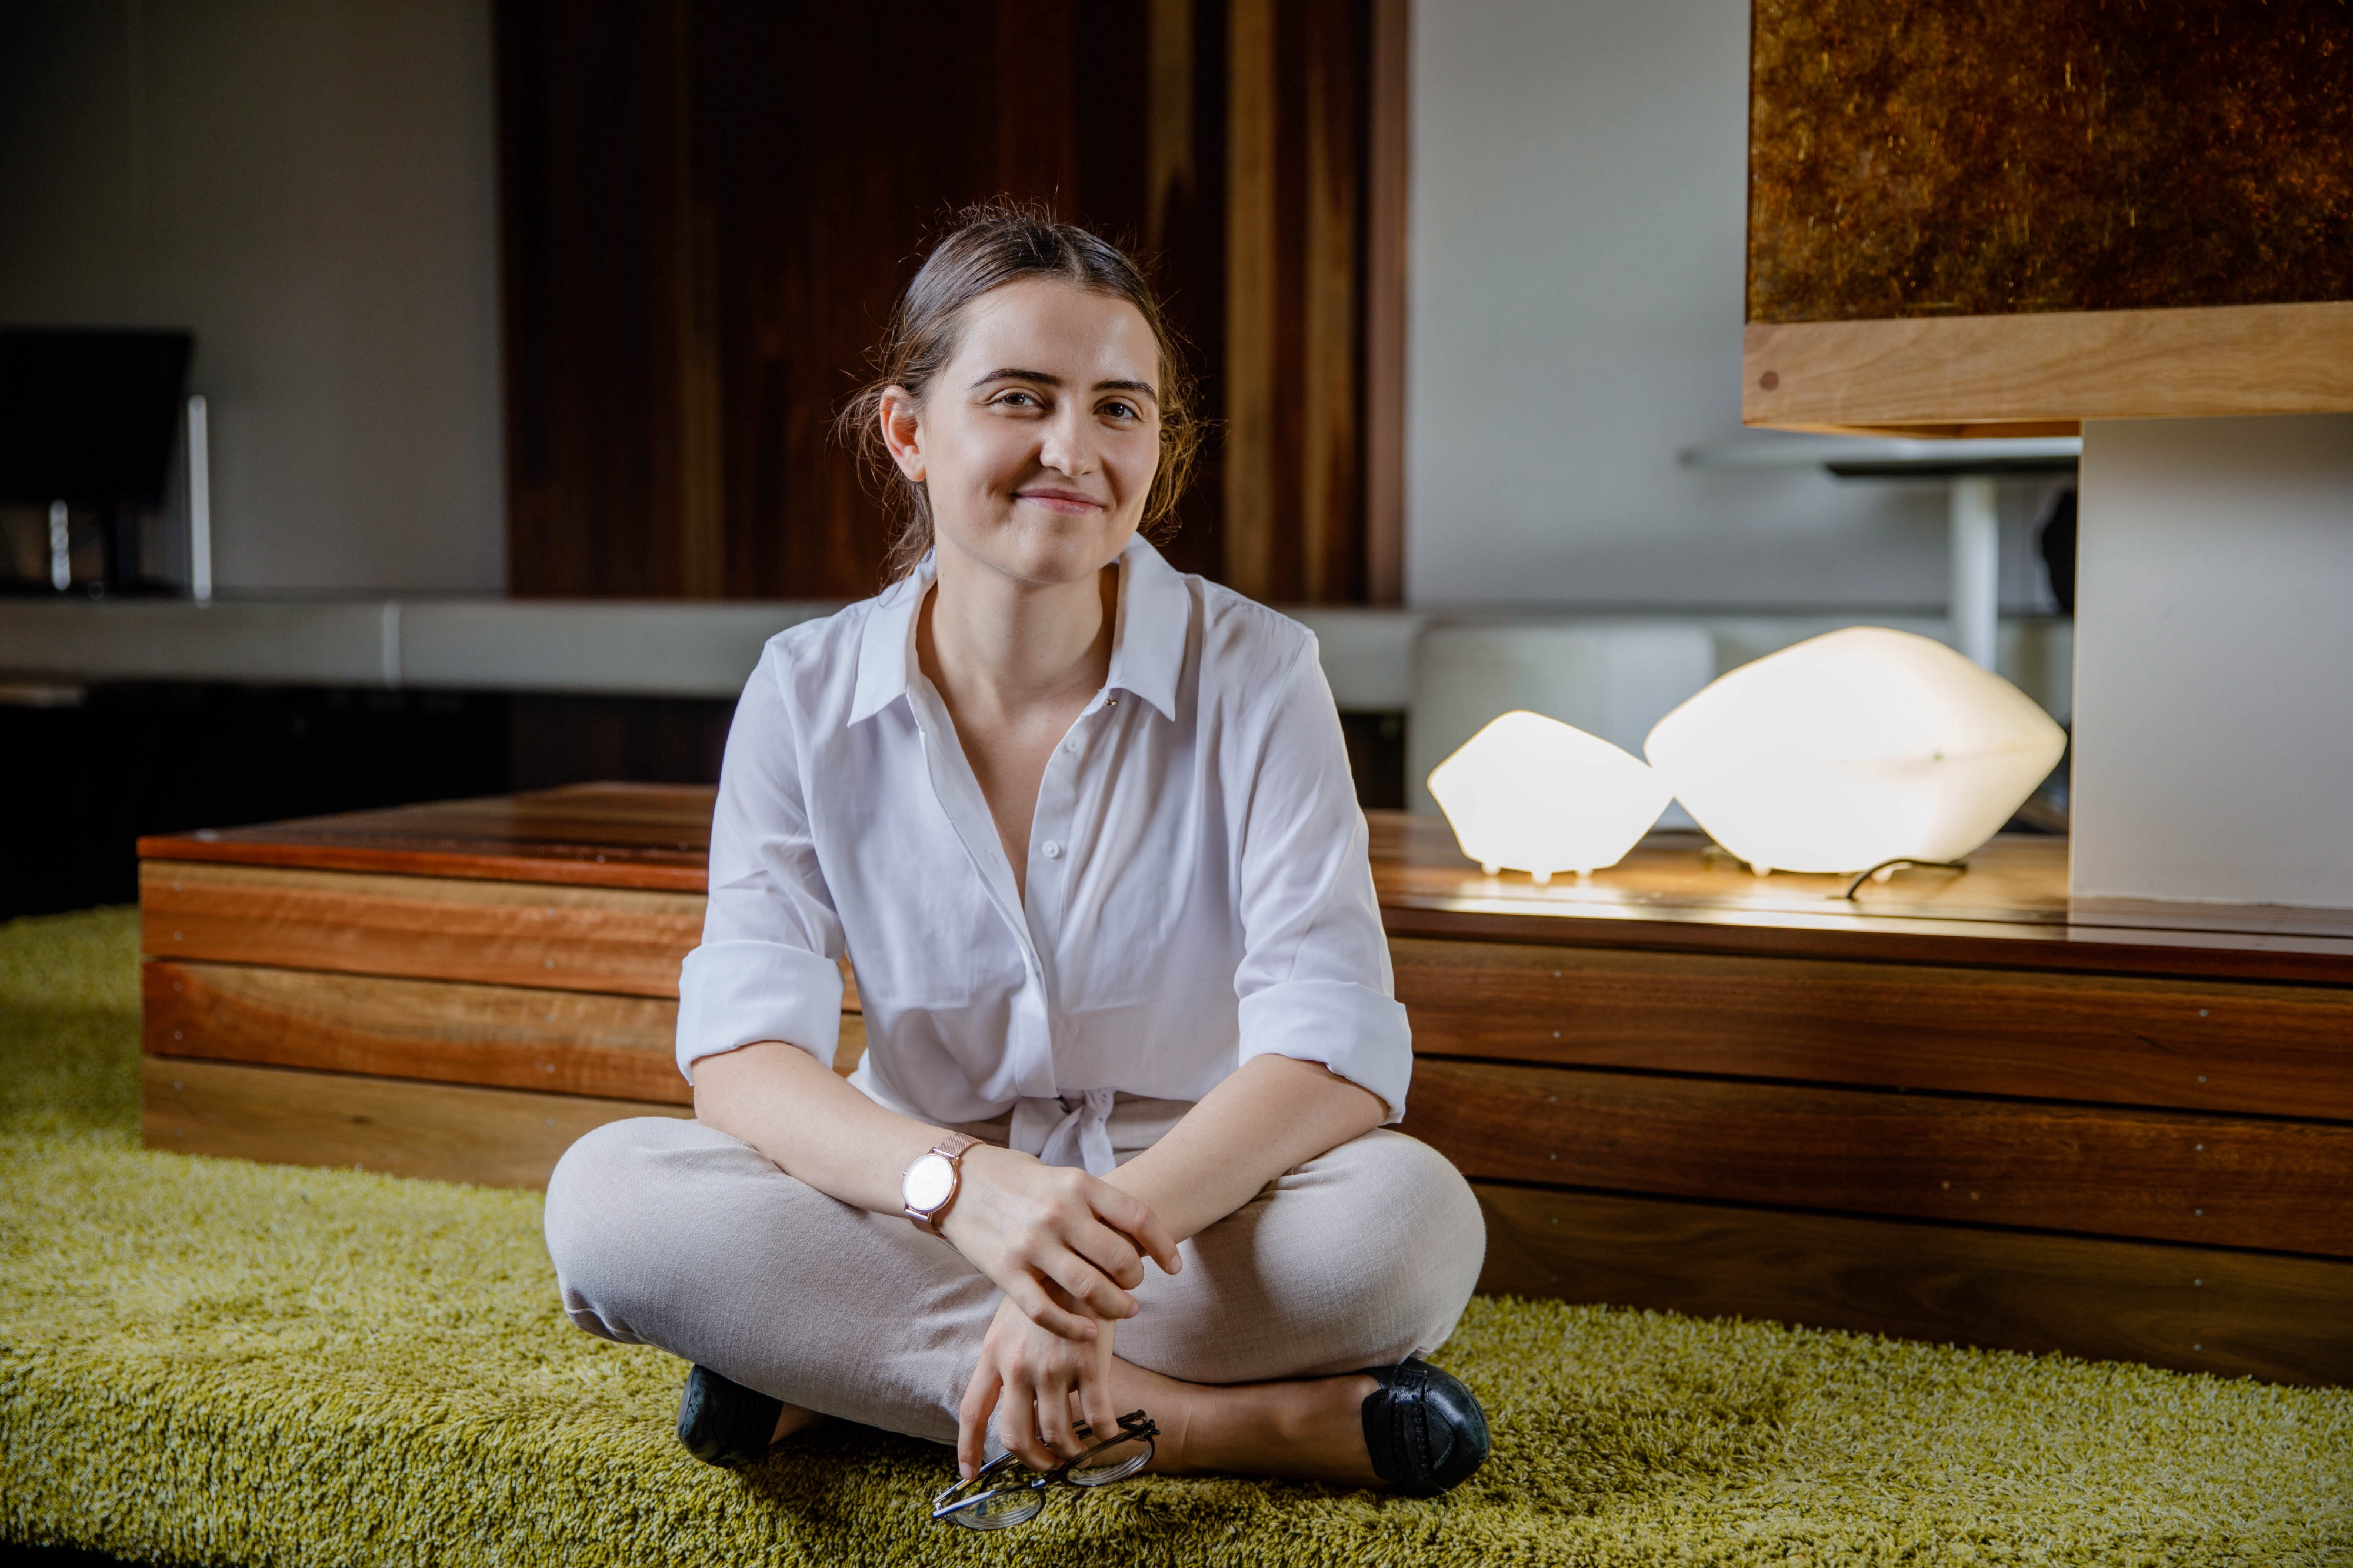 Ash Baxter, sitting cross-legged on the ground in a stylish room—plush green carpet, exposed wood and interestingly shaped lamps. She's smiling warmly at the camera, wearing a button-up shirt, trousers and loafers.